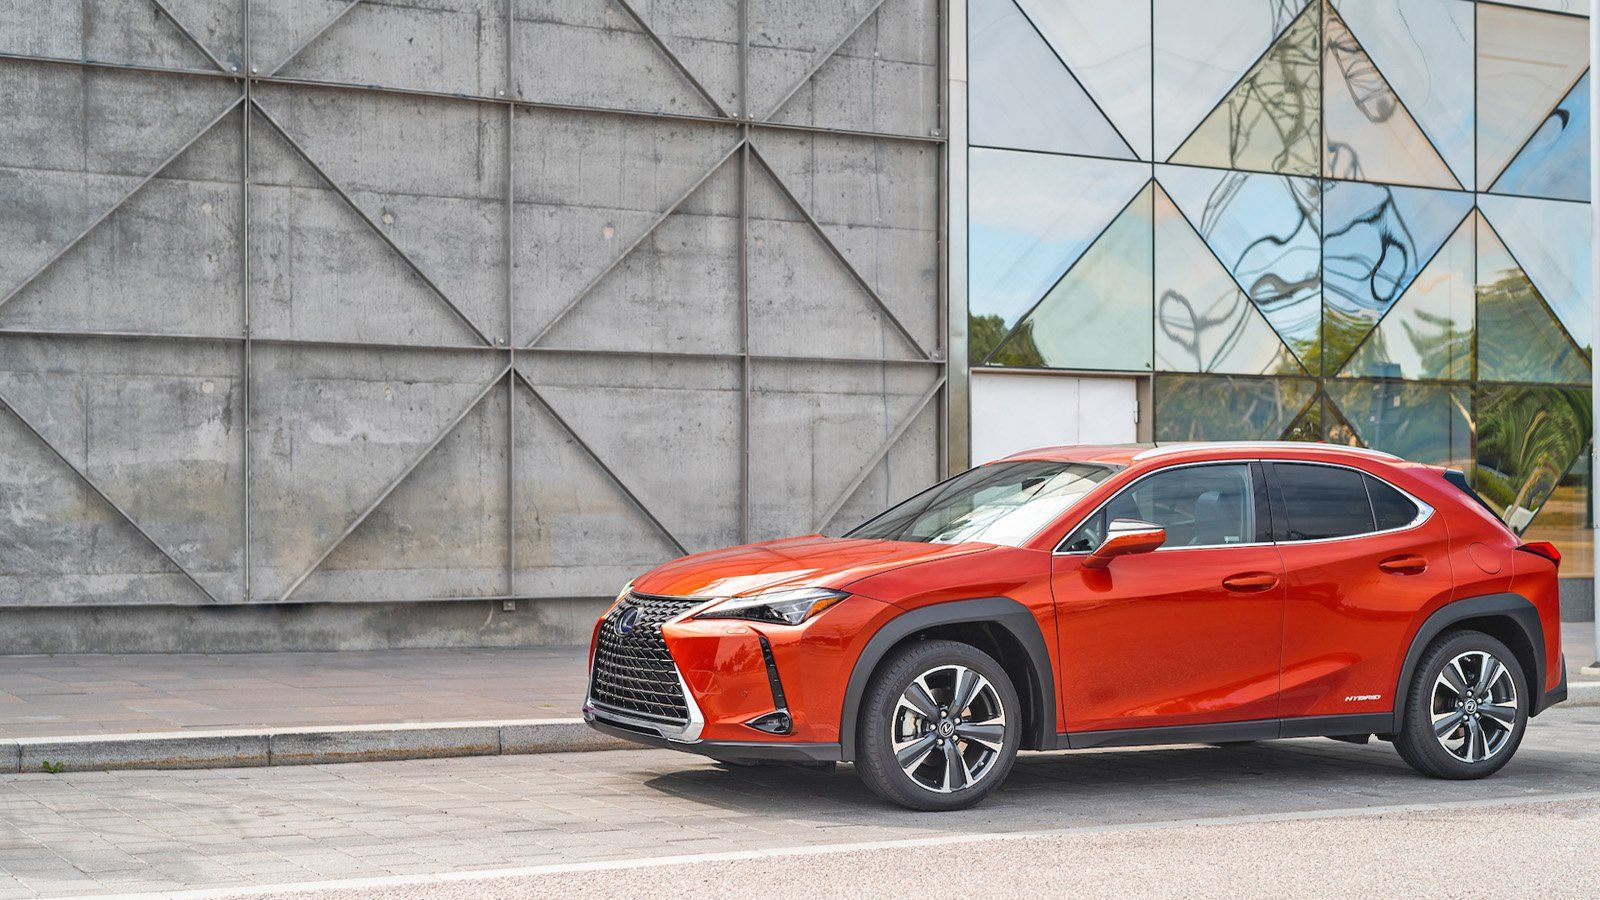 The Drive Takes Out The Lexusux 200 And Ux 250 Hybrid Lexus